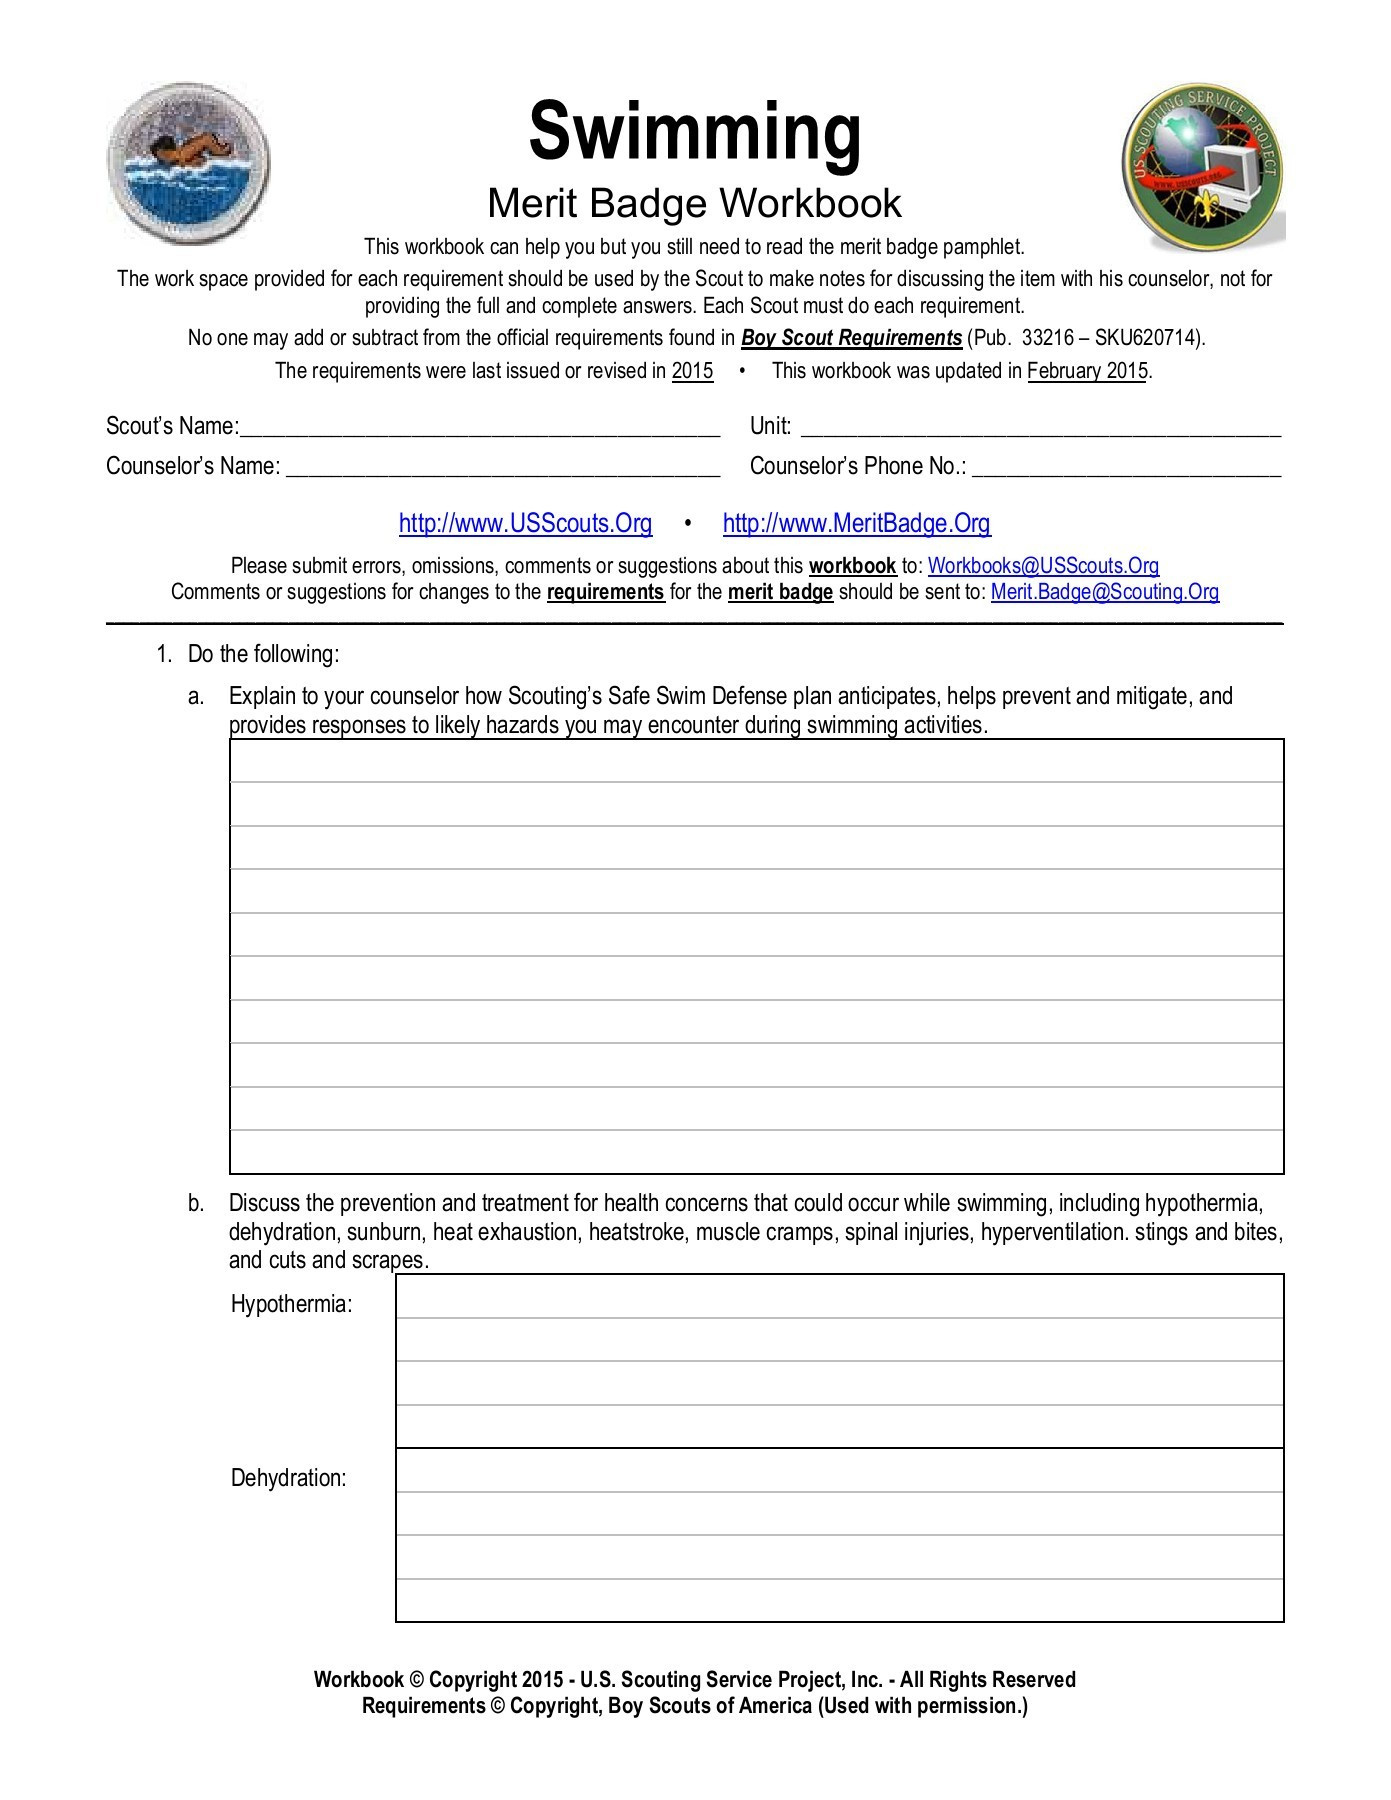 Middle School Health Worksheets Pdf First Aid Merit Badge Worksheet Pdf the Guide Worksheets